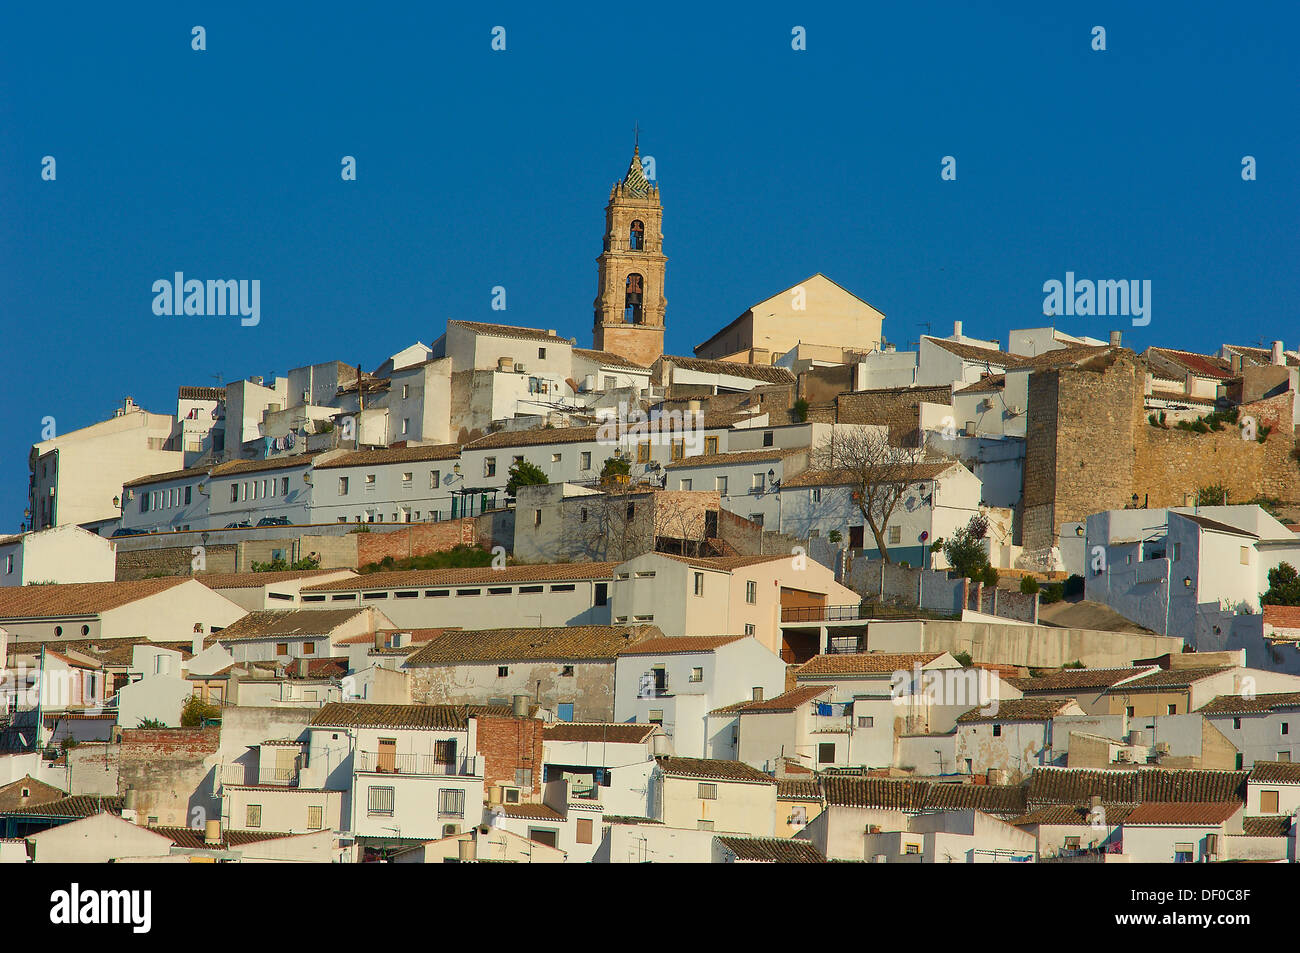 Baena, Route of the Caliphate, Cordoba province, Andalusia, Spain Stock Photo